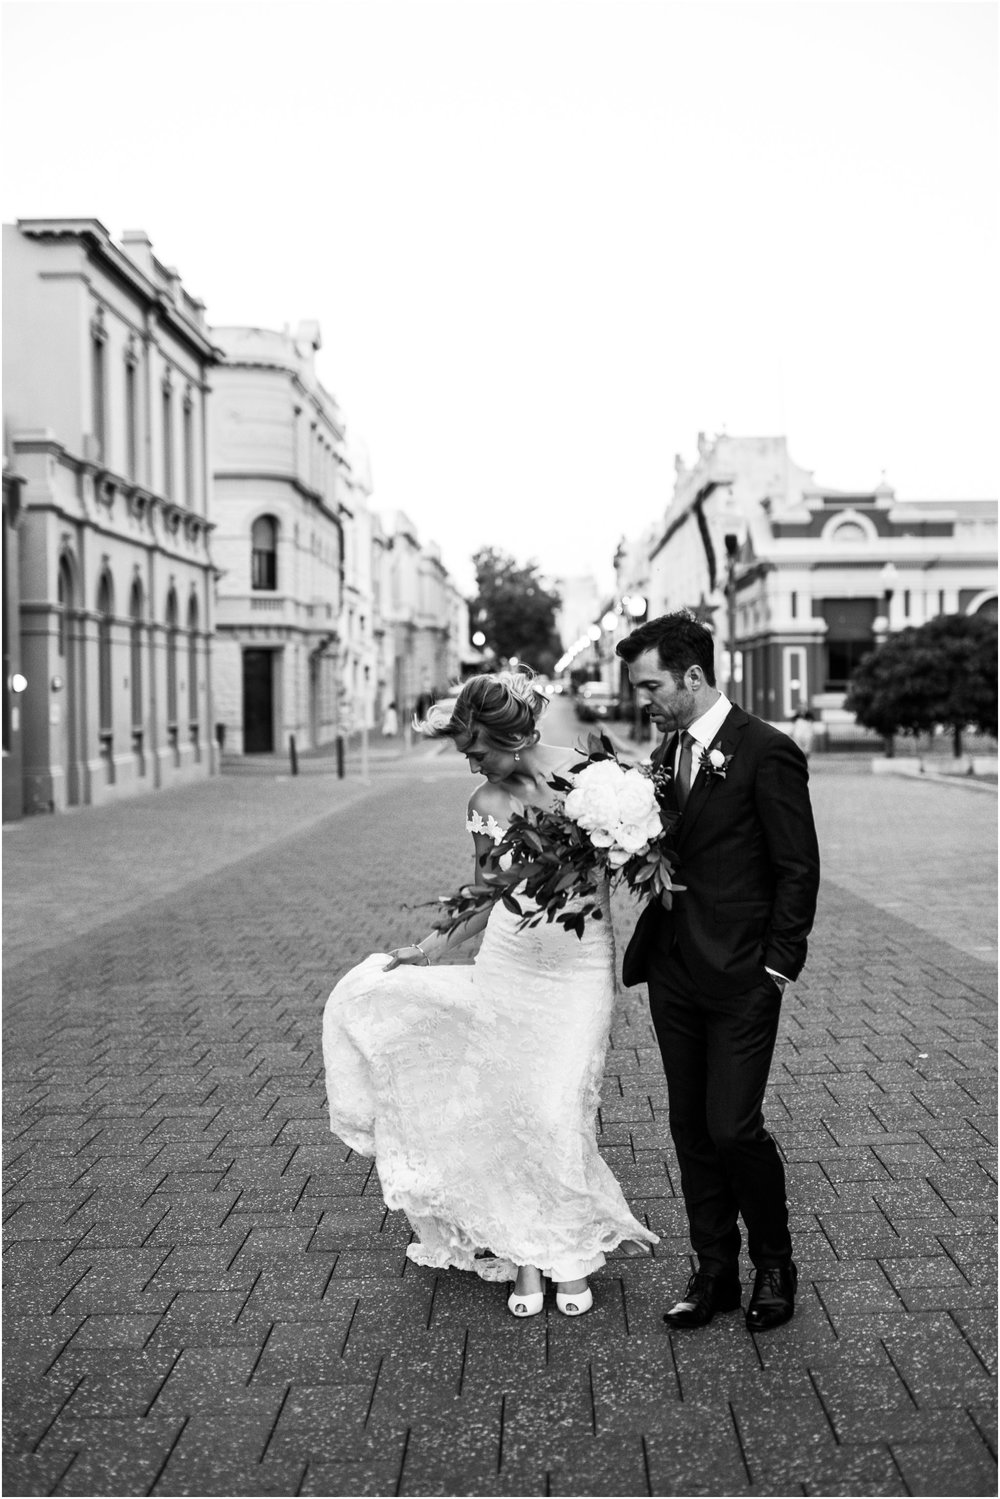 Matt+Bec - PSAS wedding Fremantle